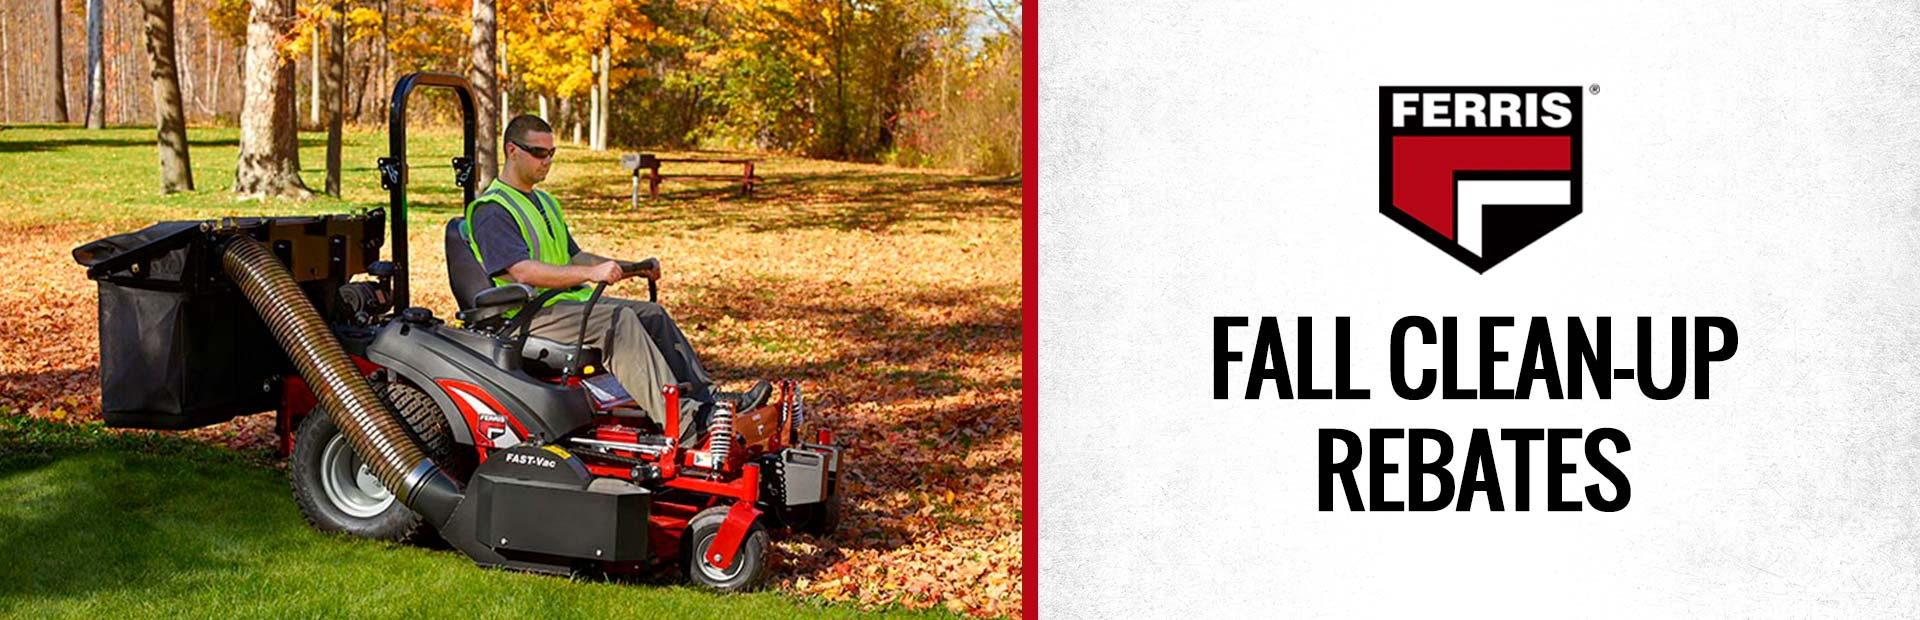 Ferris: Fall Clean-Up Rebates